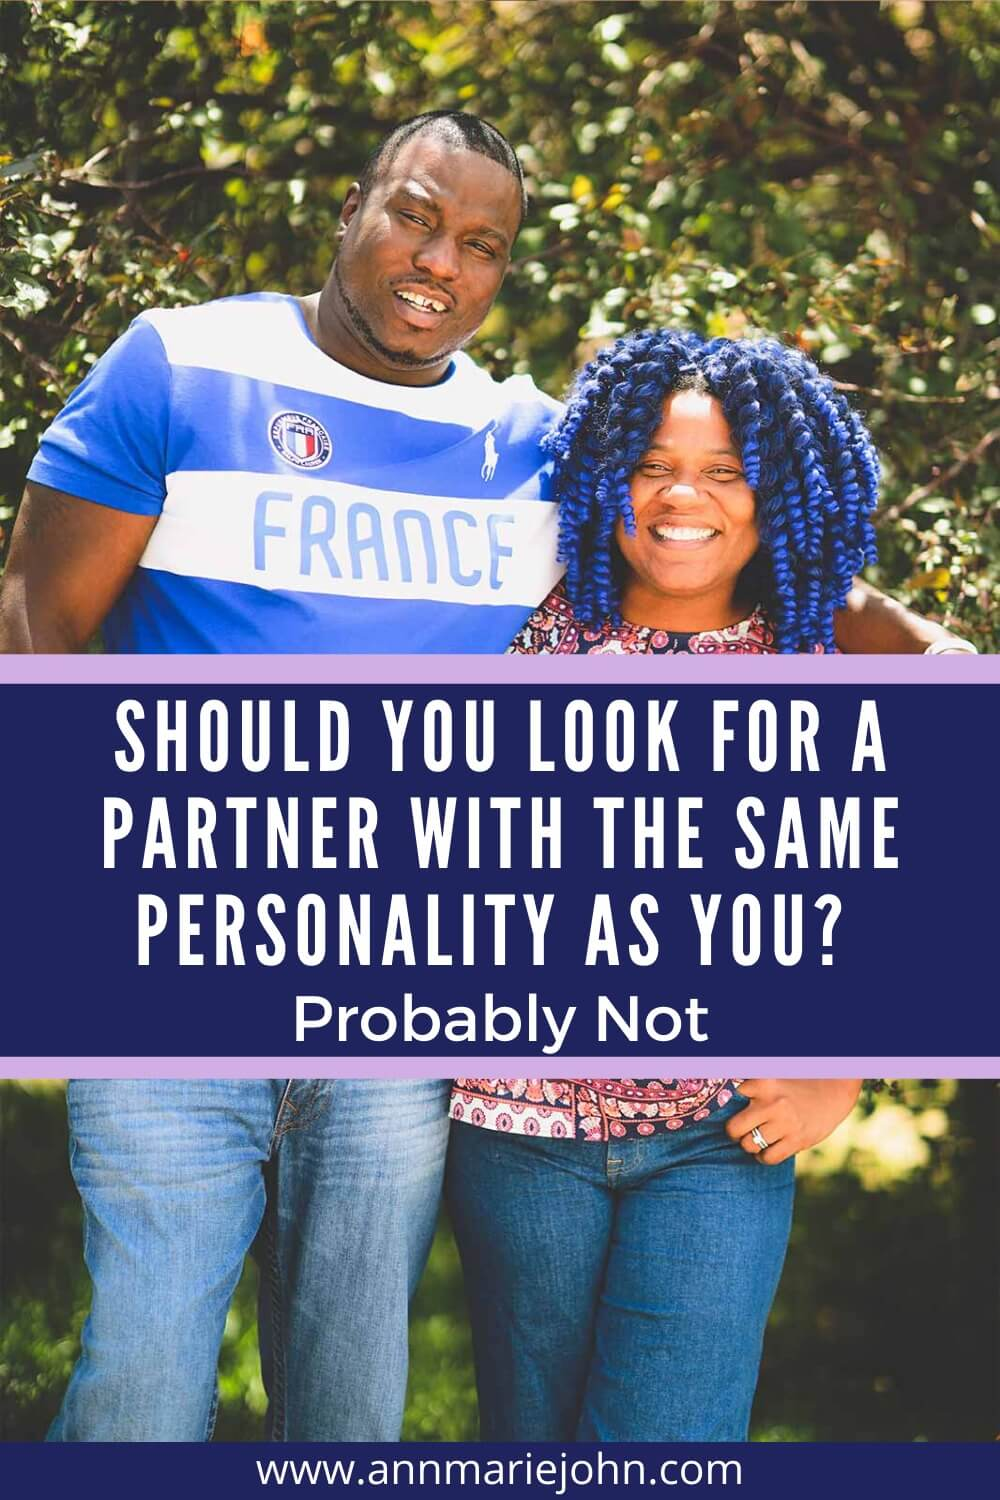 Should You Look For A Partner With The Same Personality As You? Probably Not